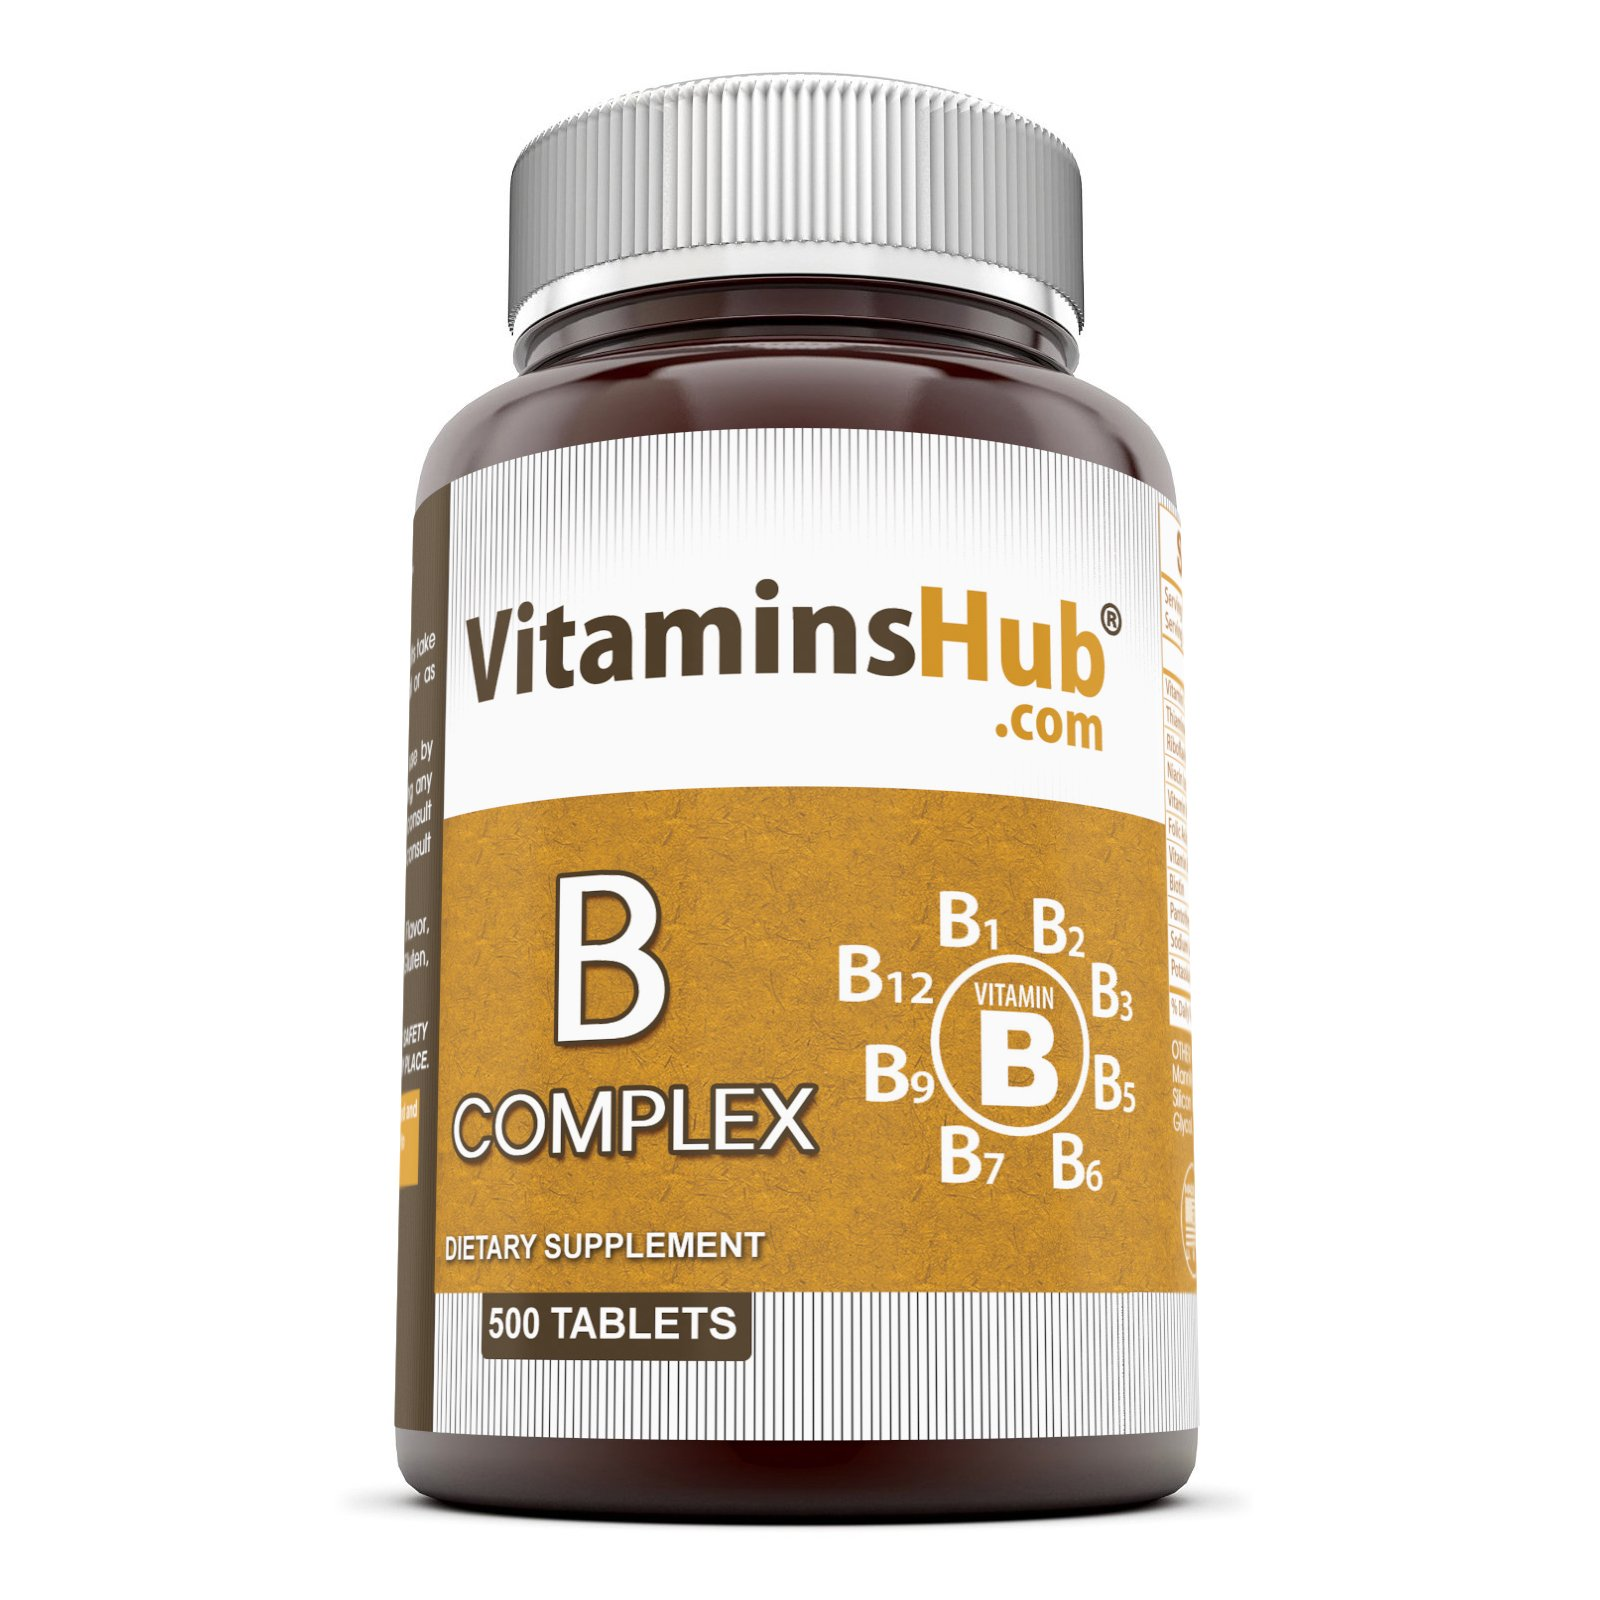 Vitaminshub One Per Day Super B-Complex with Electrolytes 500 tablets ( Value Pack )